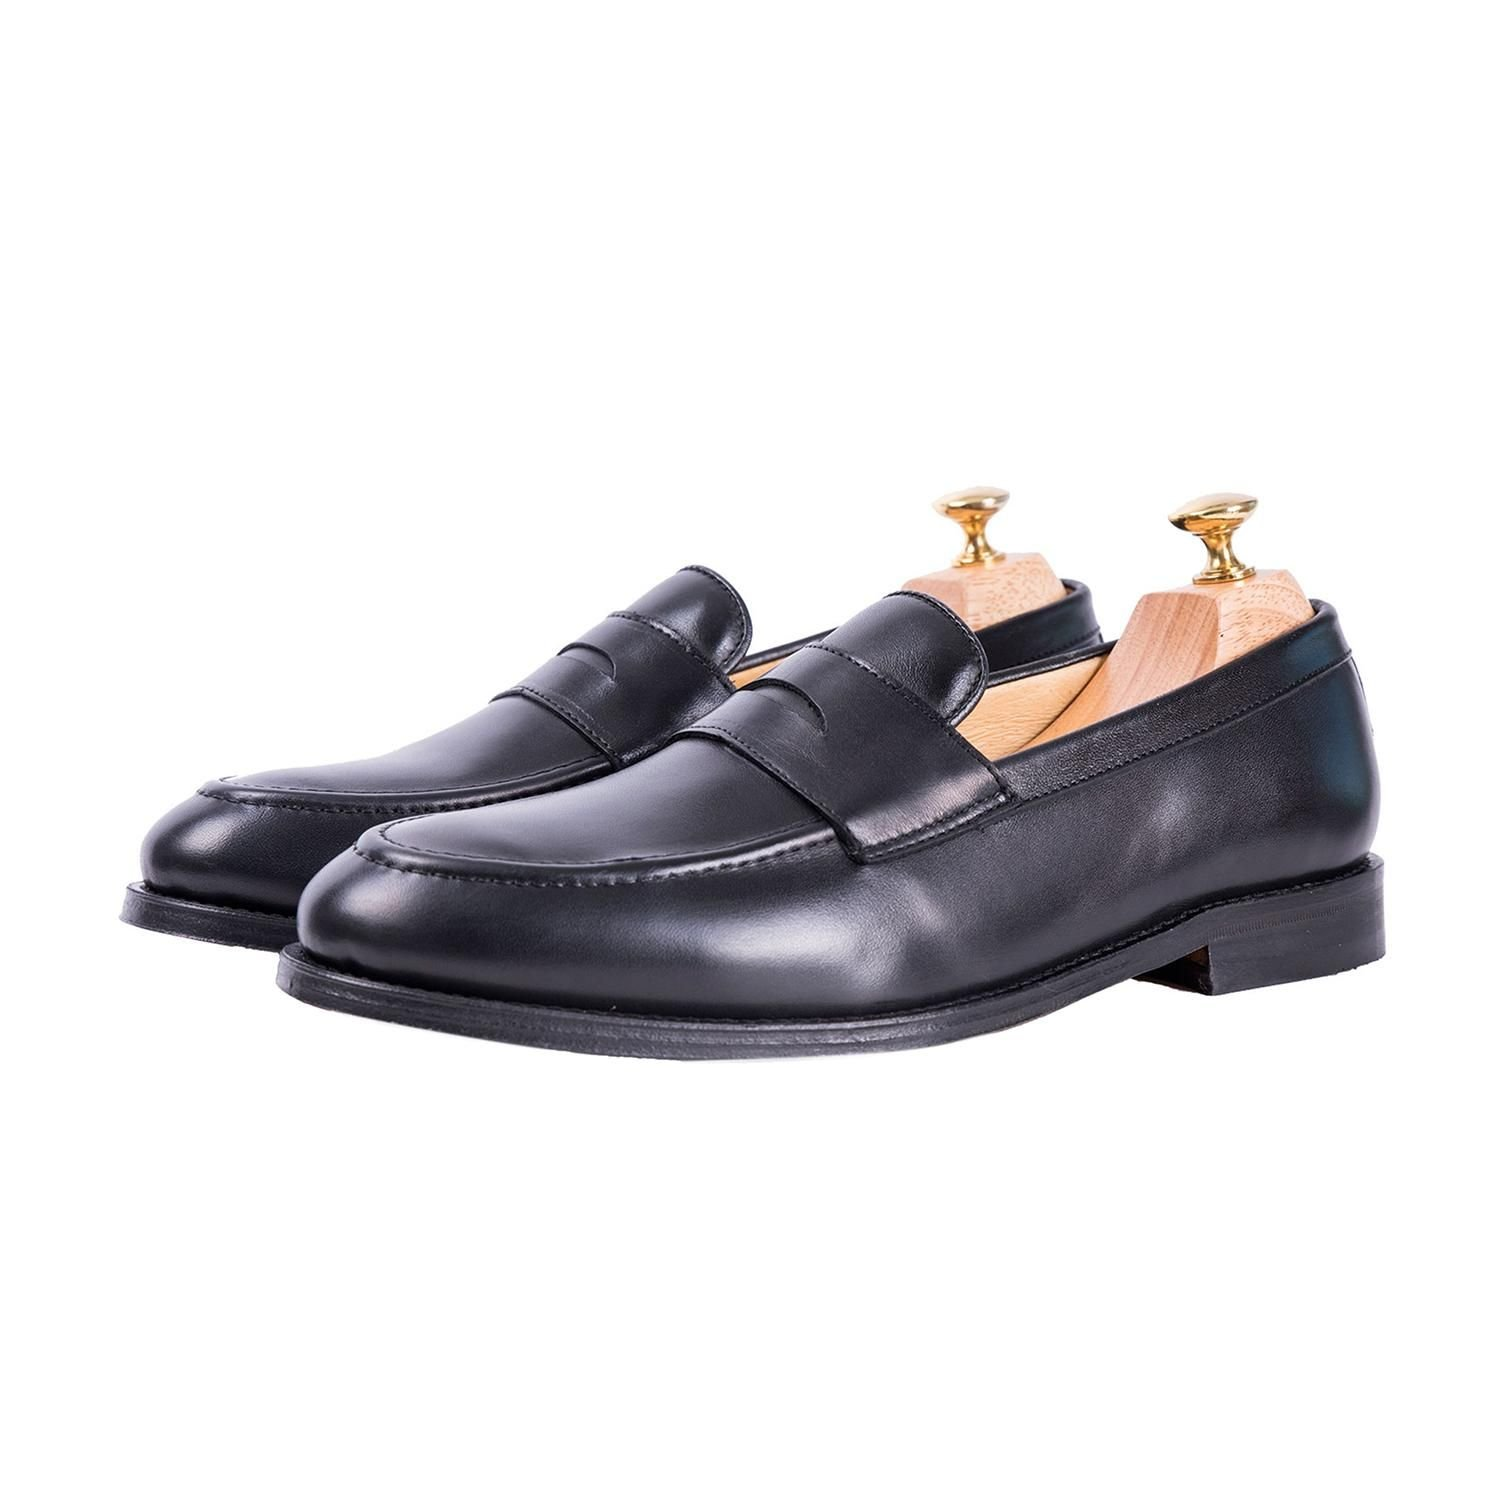 Sapatos Clássicos Glove Loafer Preto John Tweed Tailored